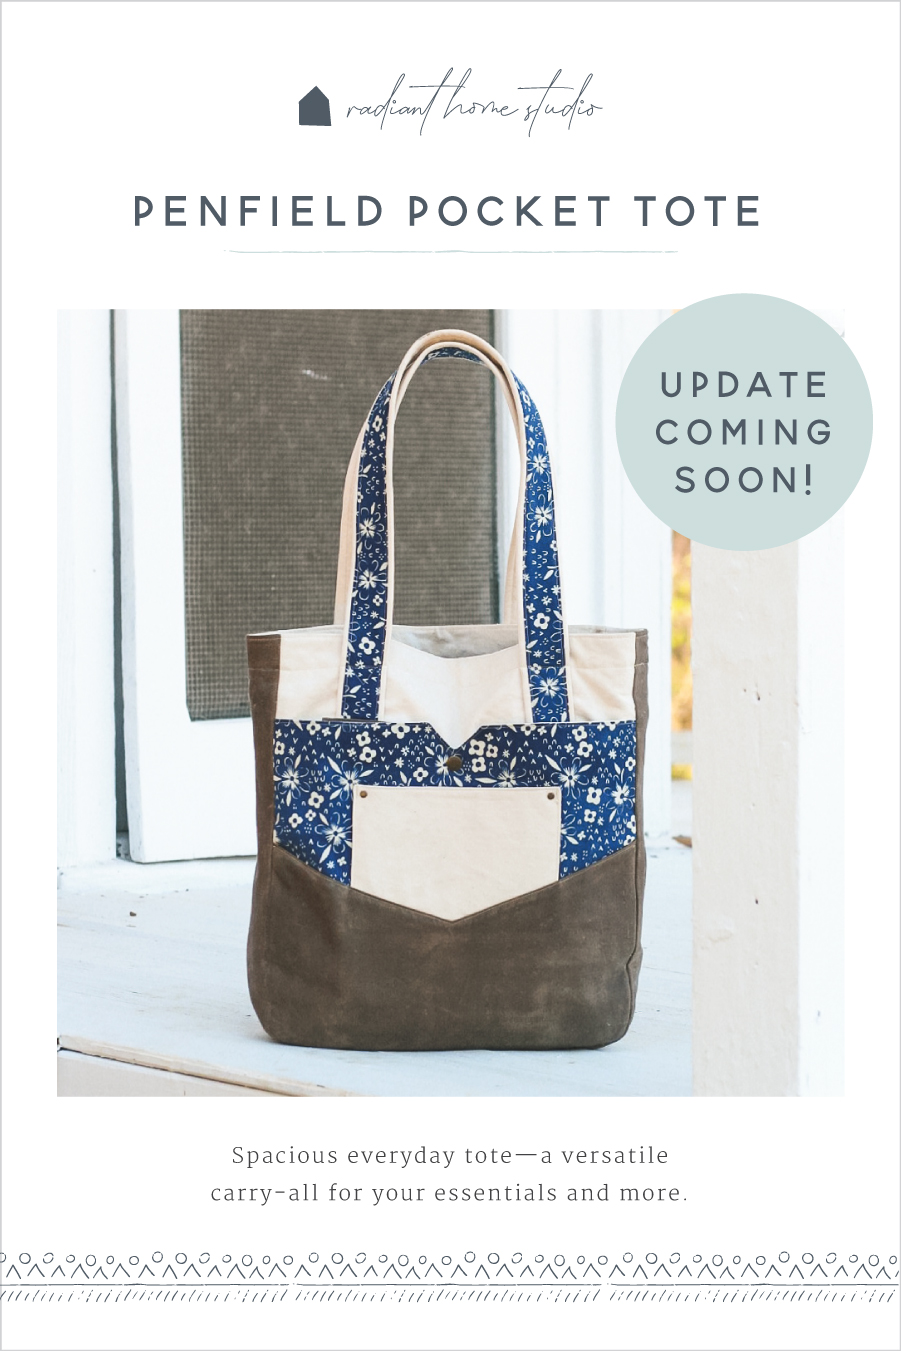 Penfield Pocket Tote Coming Soon | Radiant Home Studio